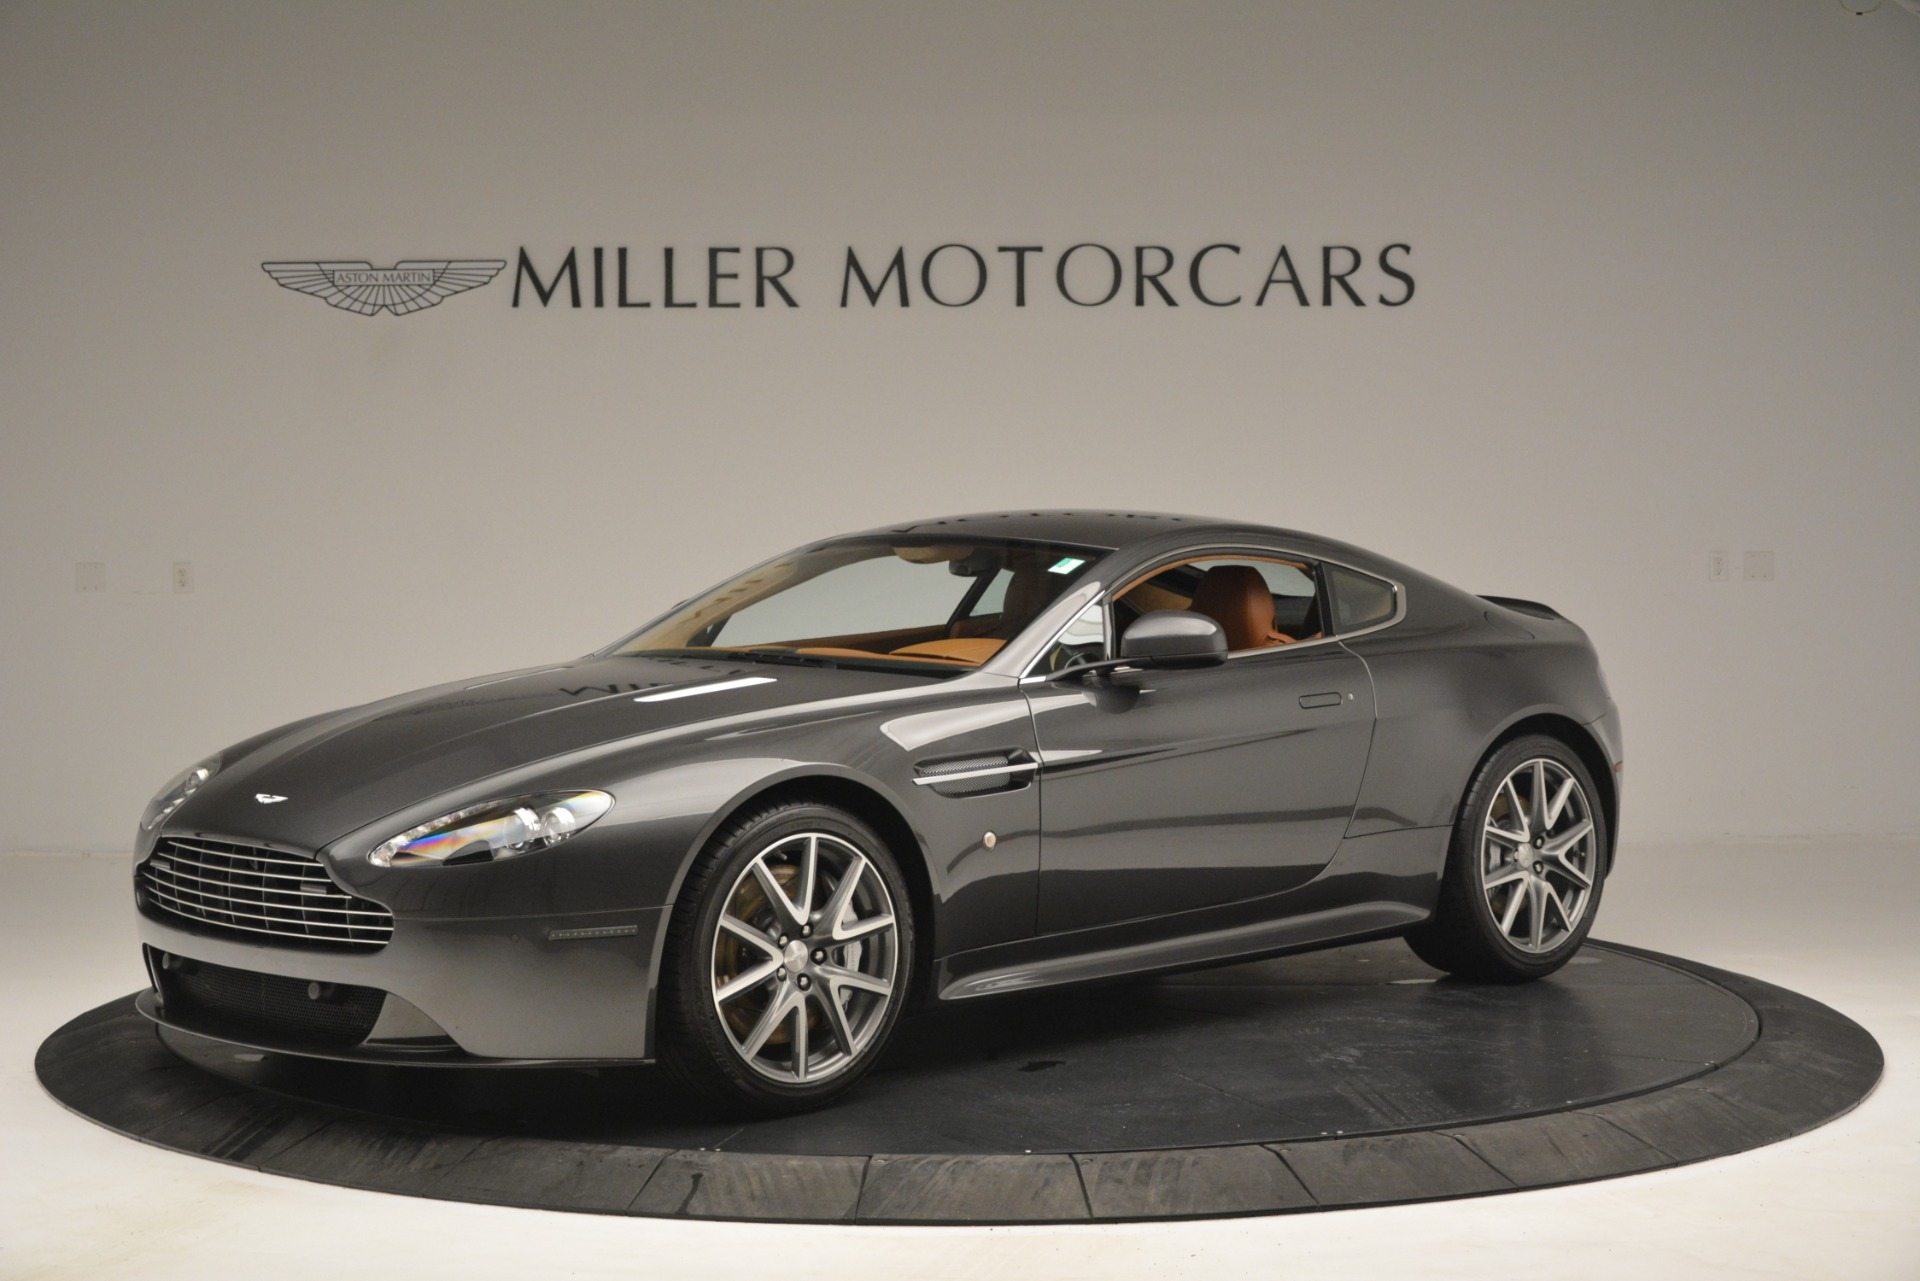 Used 2012 Aston Martin V8 Vantage S Coupe For Sale In Westport, CT 2951_p2